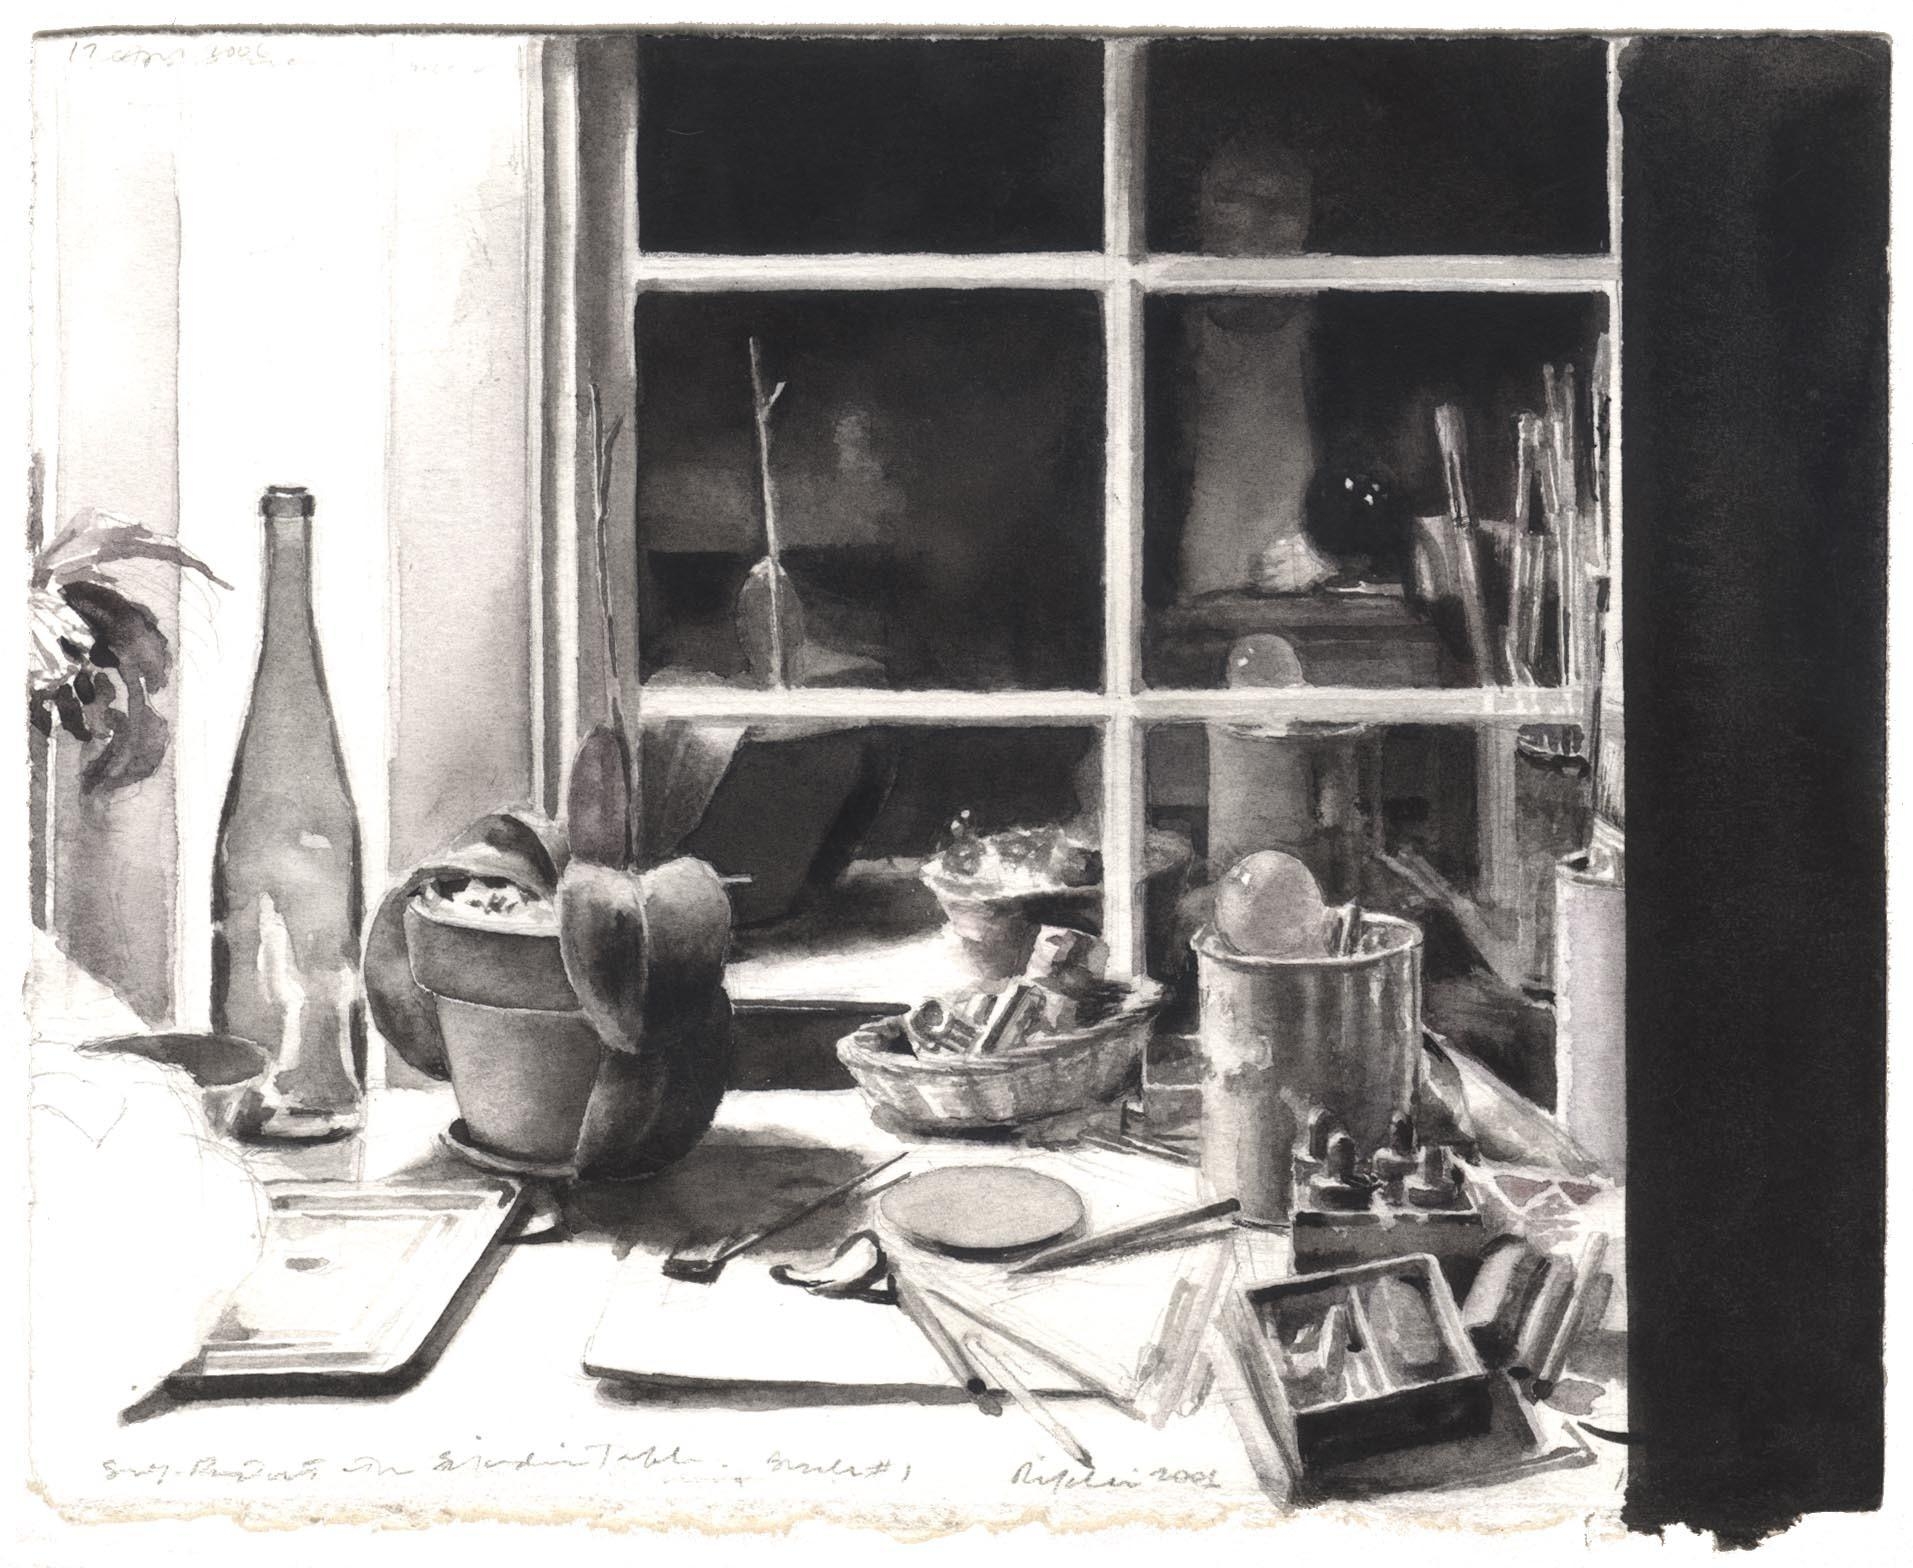 Self-Portrait with Studio Table image